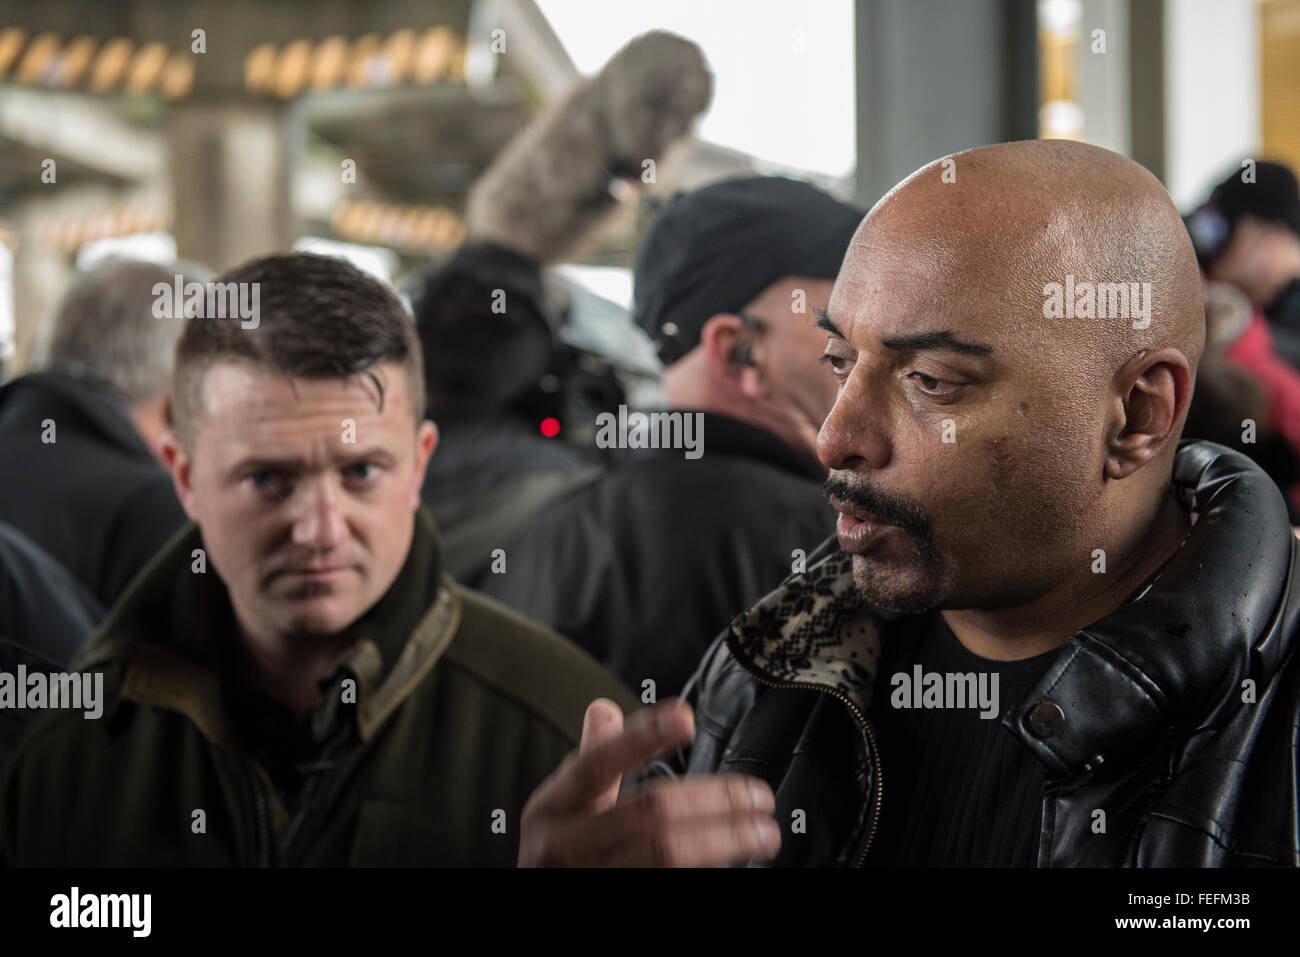 Birmingham, UK. 6th February 2016. Supporters of Pegida UK hold a rally in Birmingham, United Kingdom. A large Police - Stock Image